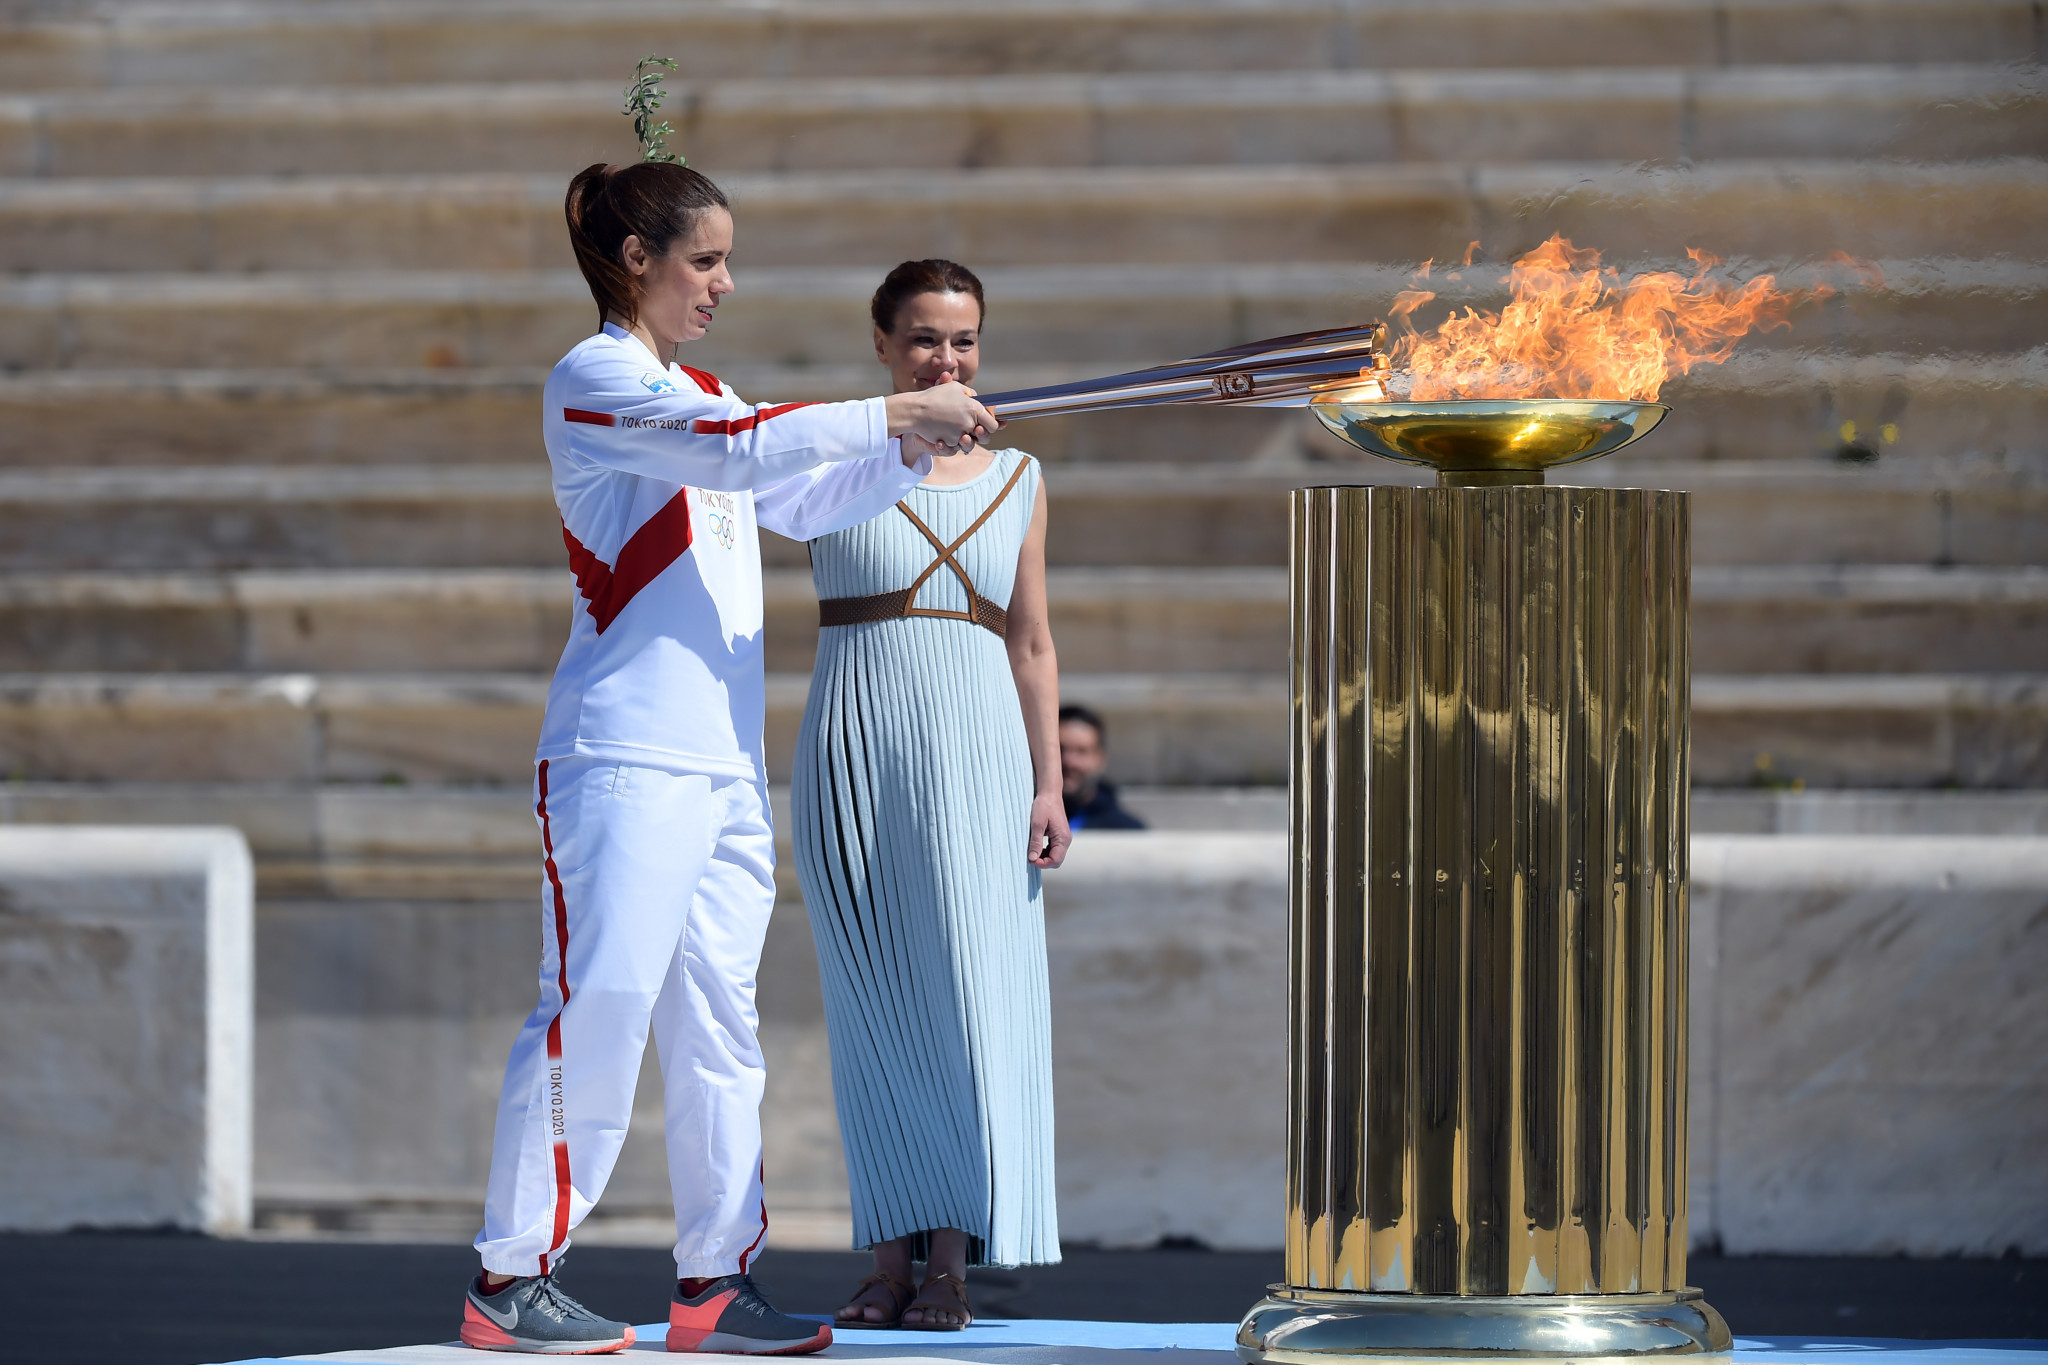 Greek pole vaulter Katerina Stefanidi lights a cauldron in the stadium ©Getty Images